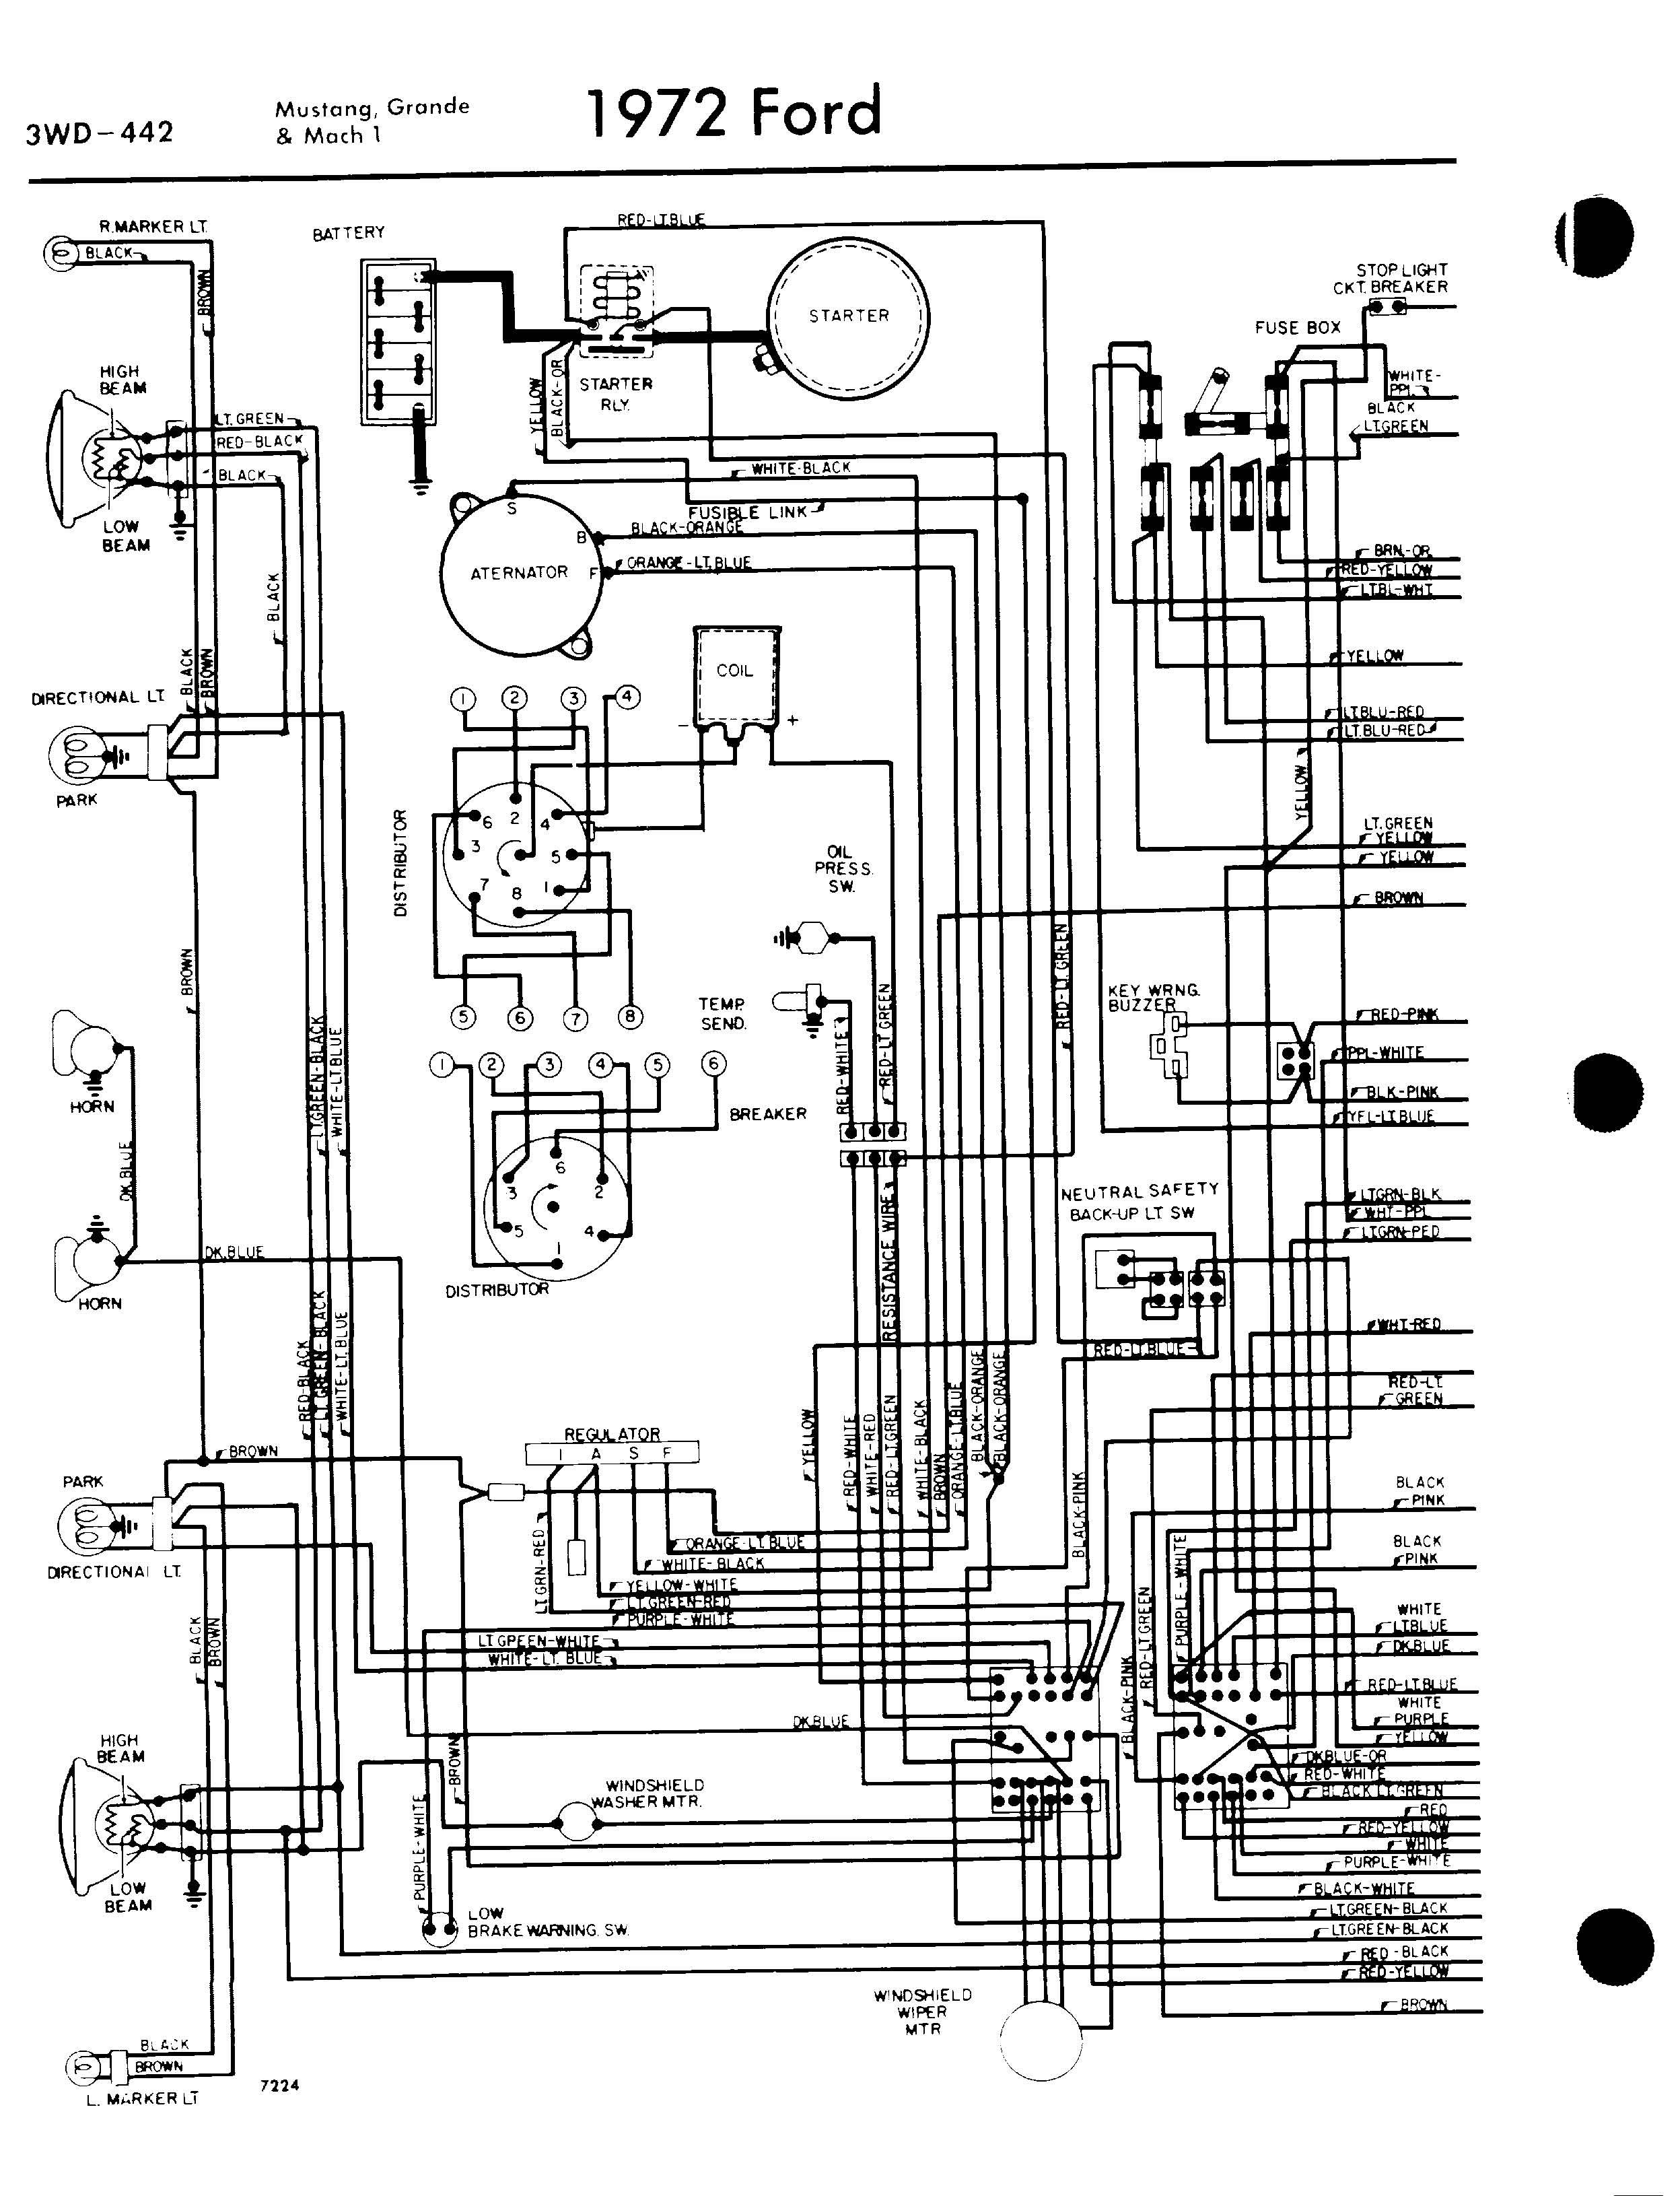 71af7a58e095e6a7716b32f1b23e8bd2 72 mach1 alternator wire harness diagram yahoo search results Basic Electrical Wiring Diagrams at soozxer.org